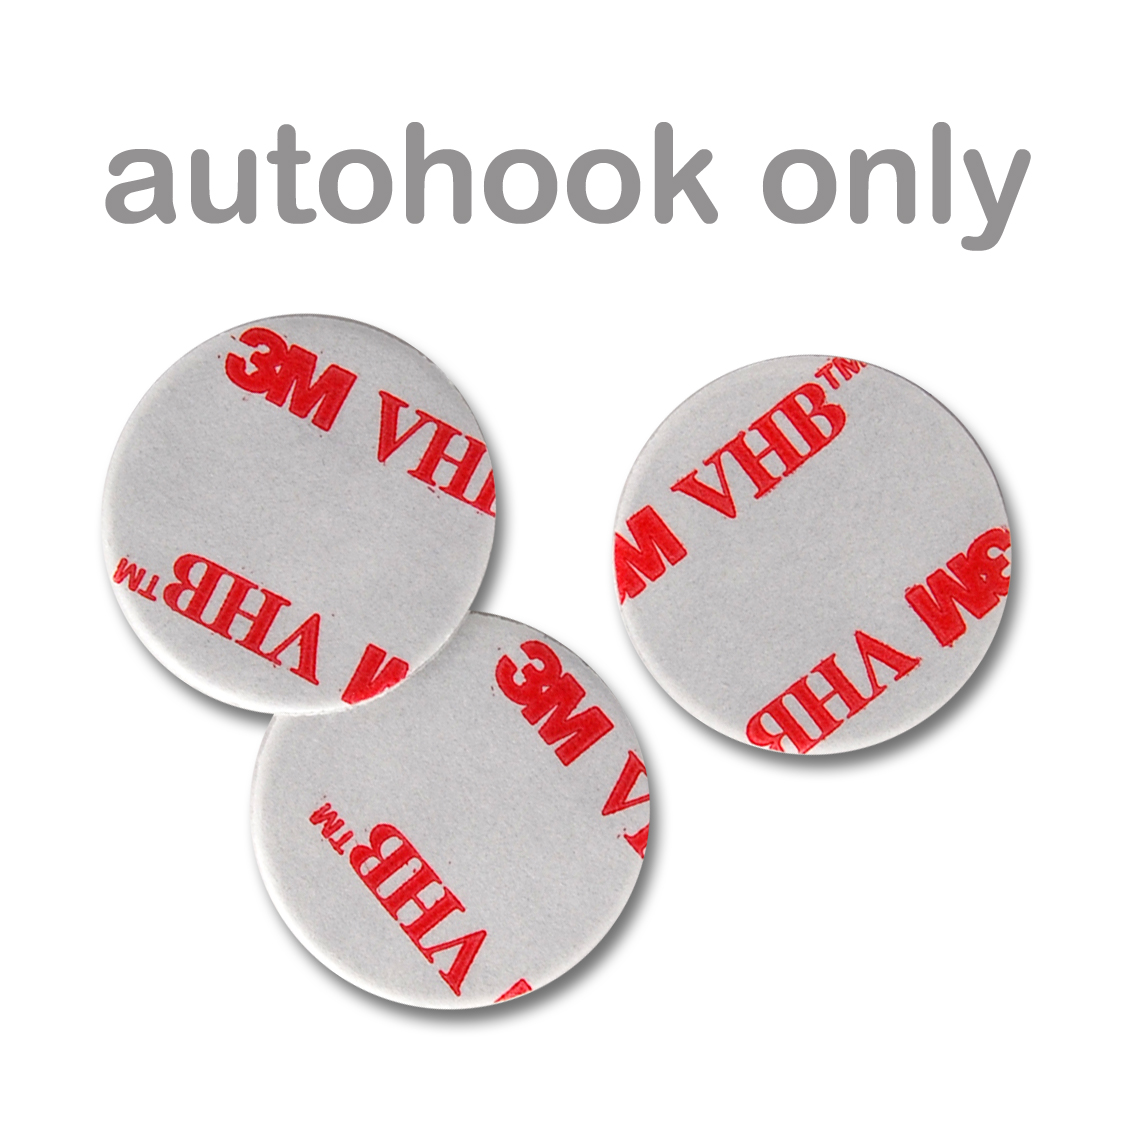 Adhesive #906 Tabs for Autohook (3 pack)